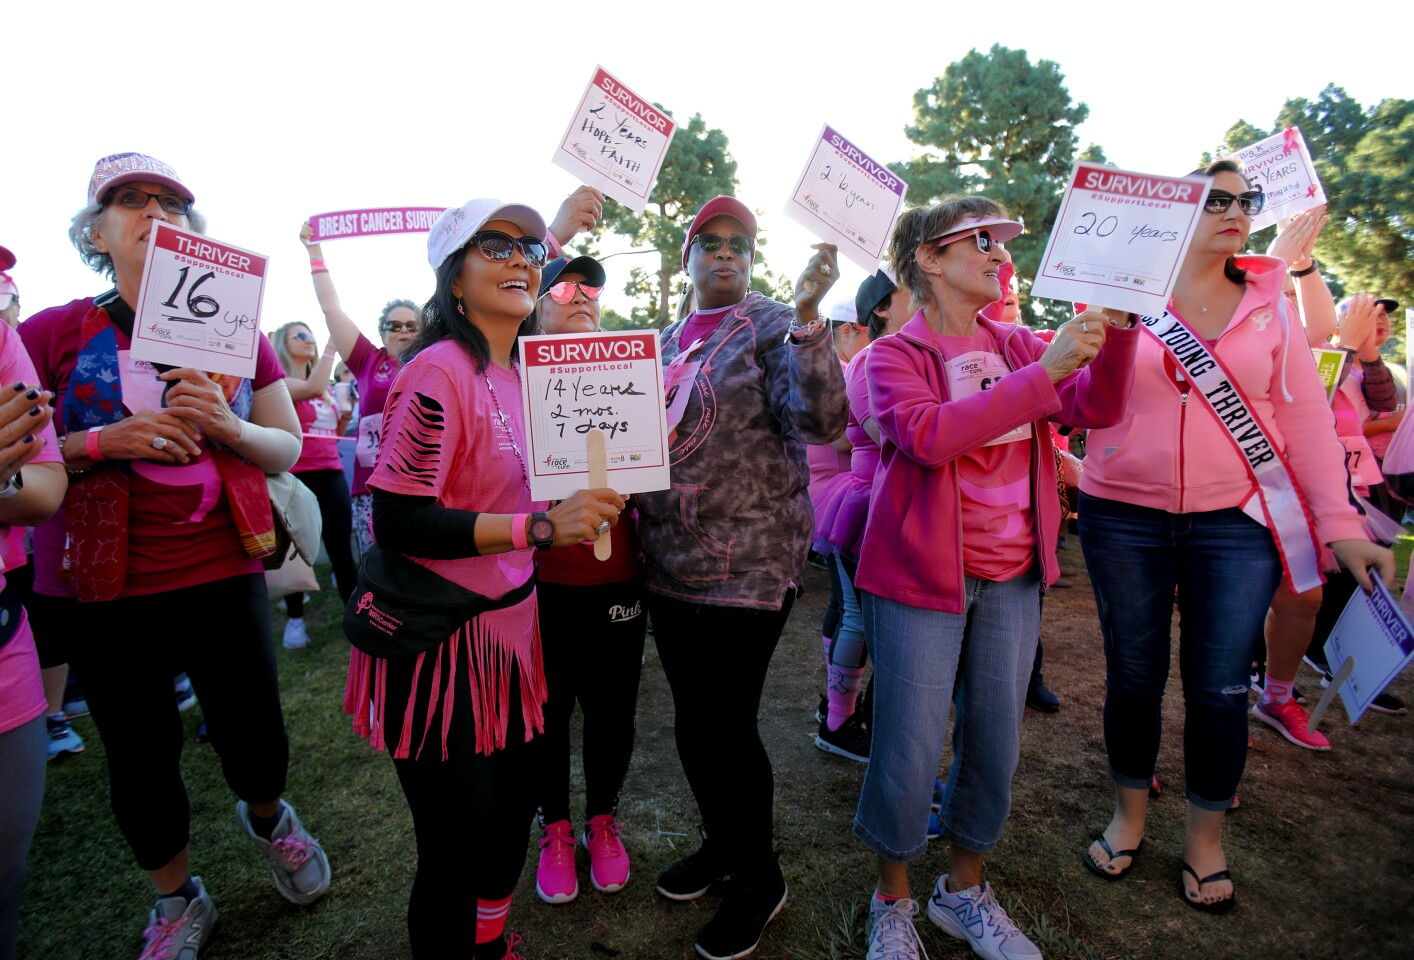 Susan G. Komen, Race for the Cure 2019